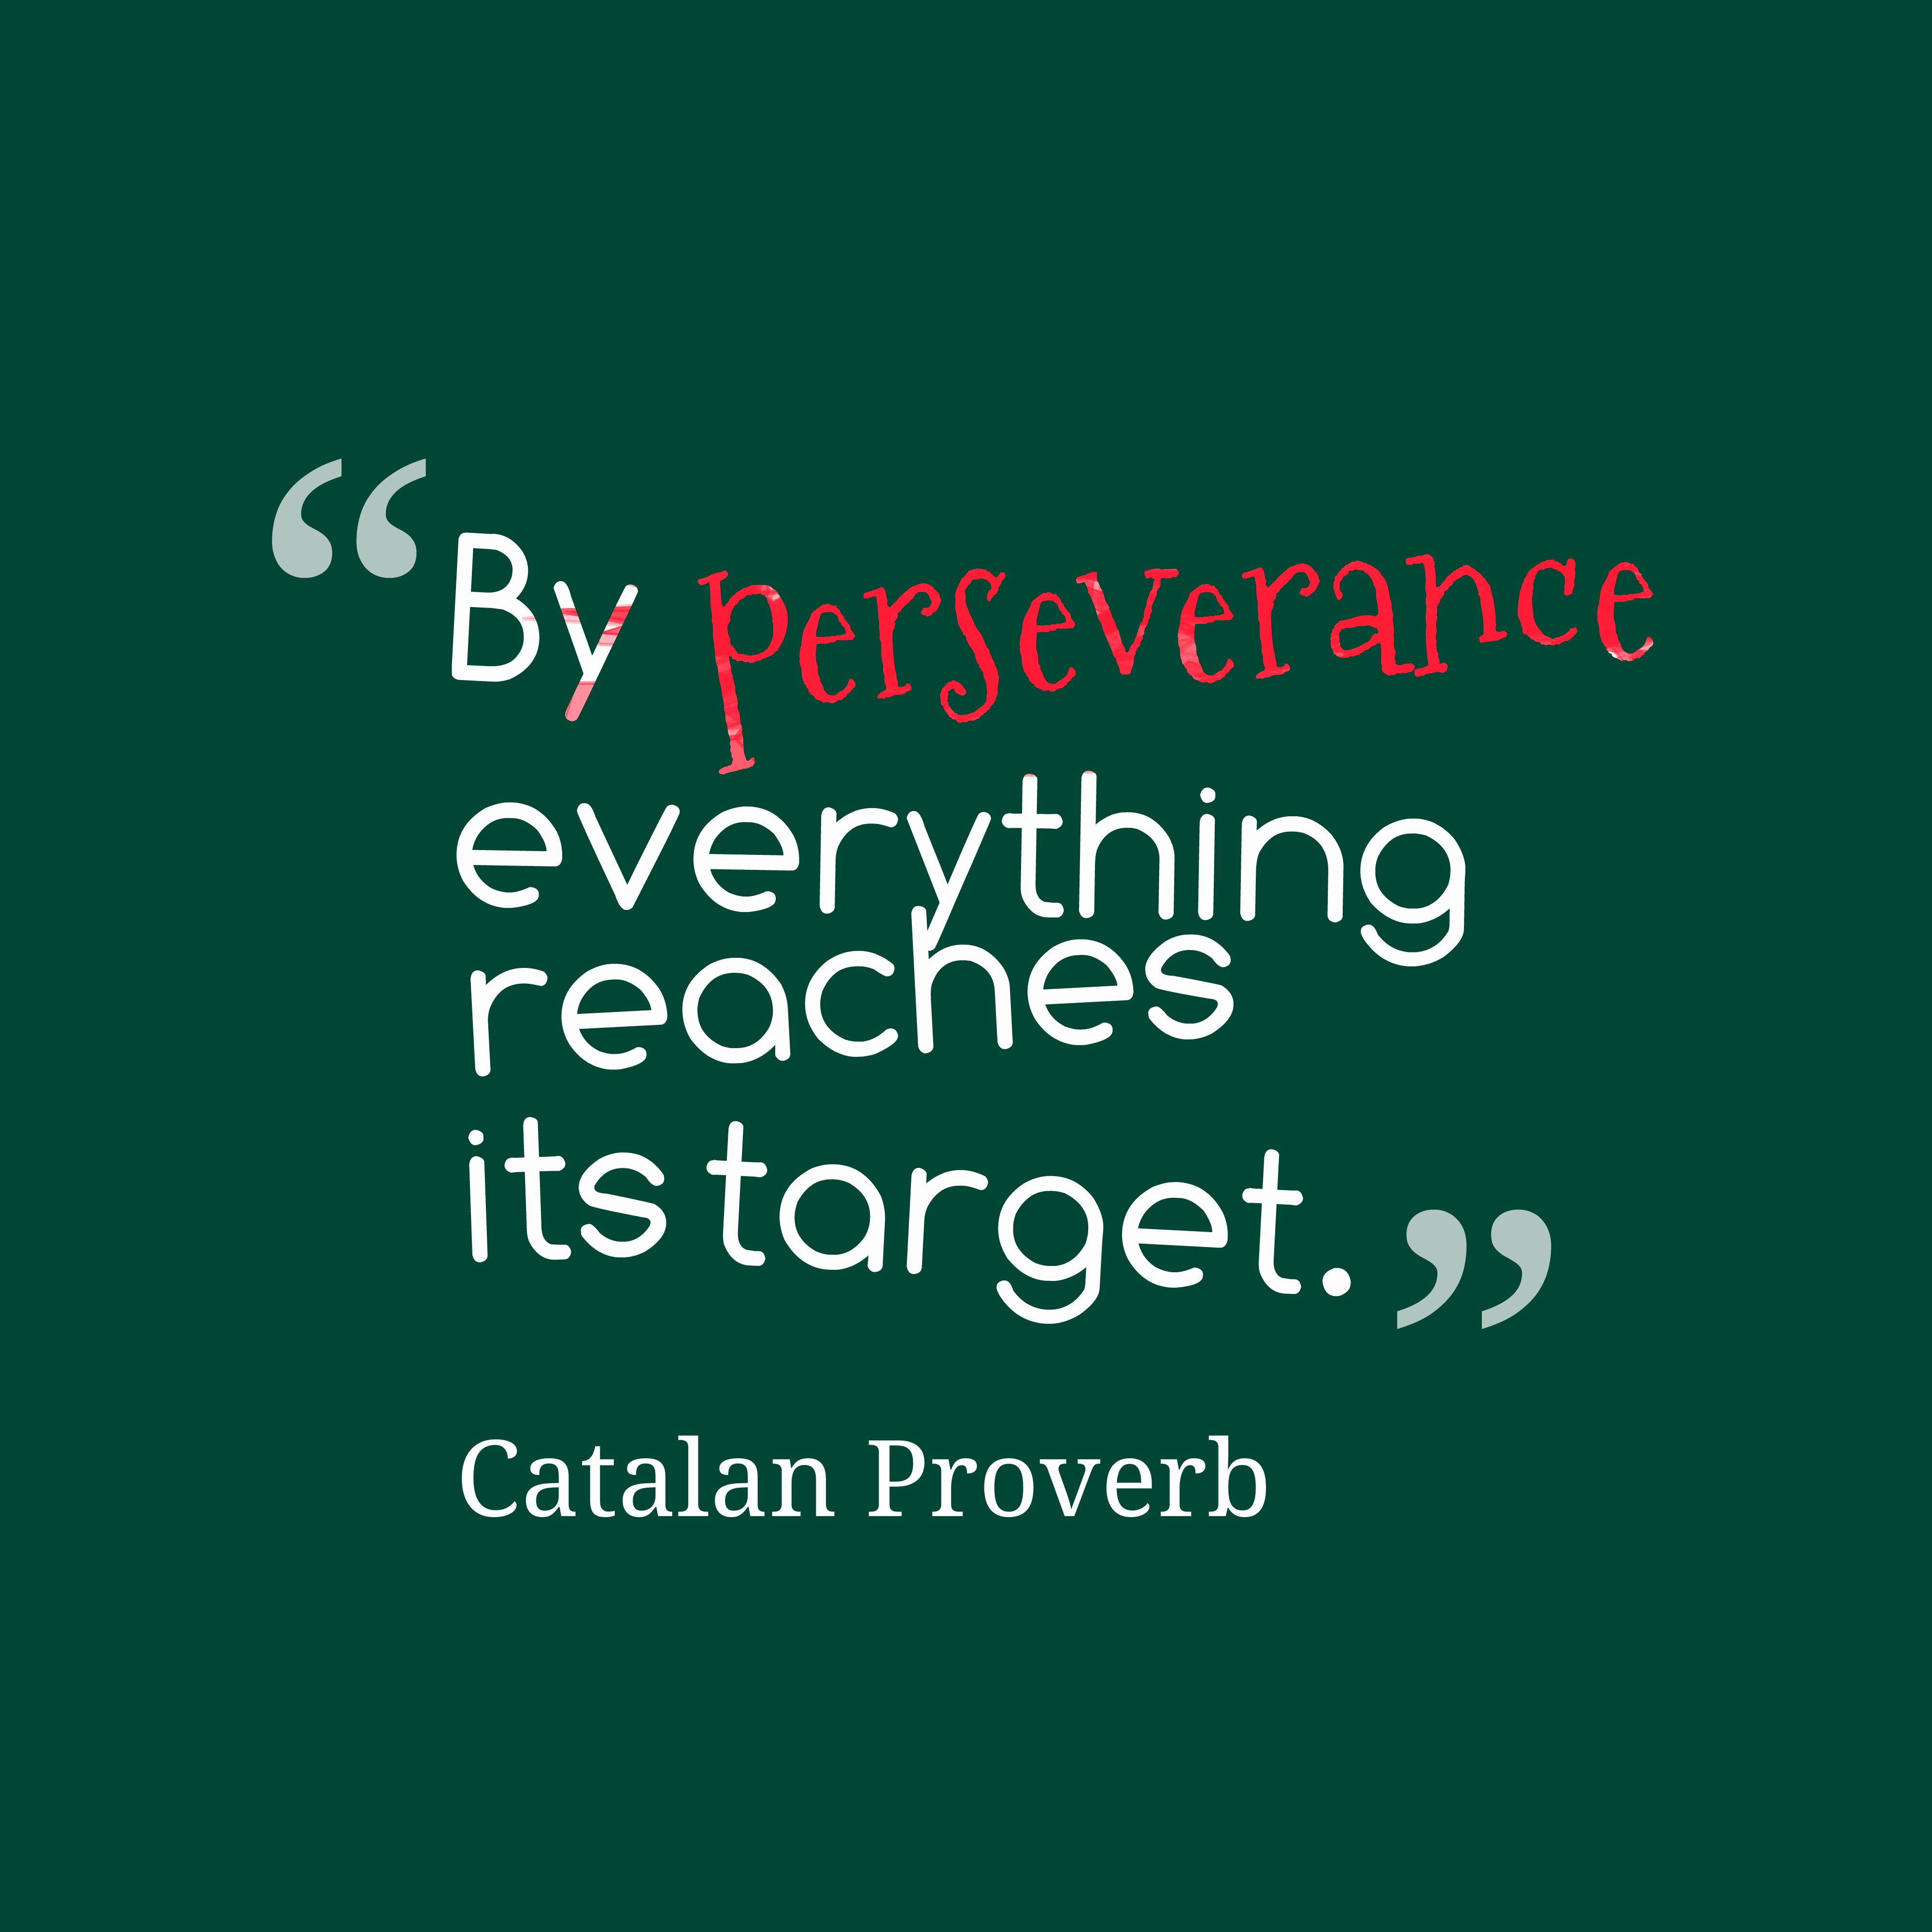 Inspirational Quotes About Perseverance Perseverance Inspirational Quotes Perseverance Wallpapers Group